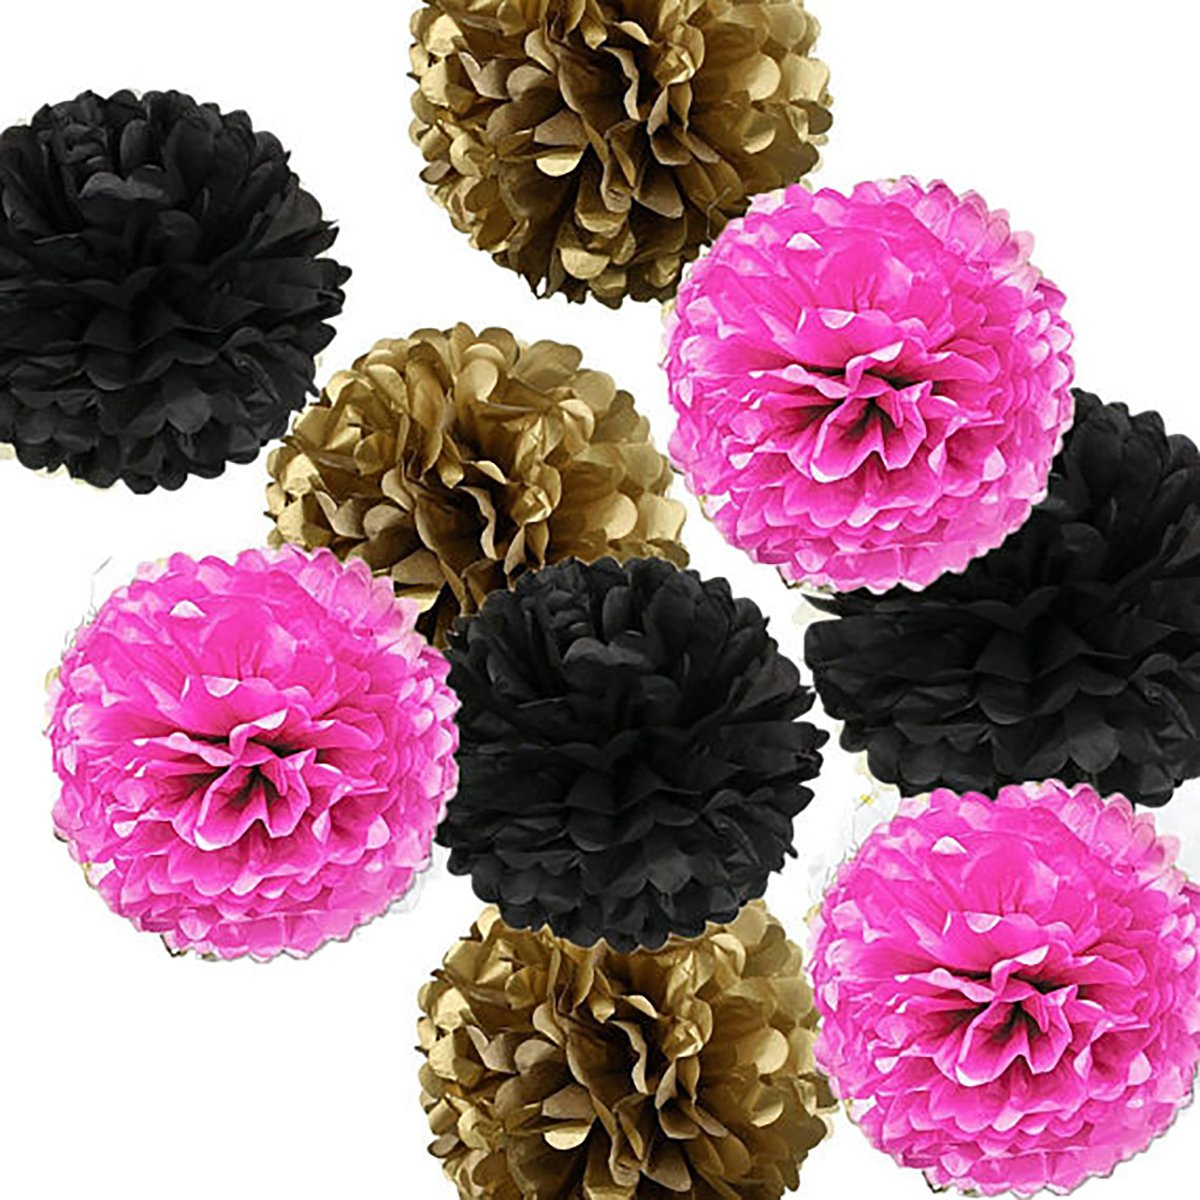 16pcs Tissue Paper Pom Pom White Pink Gold Black Paper Flower Ball Decoration Tissue Ball Paper Decoration for Baby Shower Parisian, French, Paris, Pink, Pink and Black Birthday Party Ideas furunxin